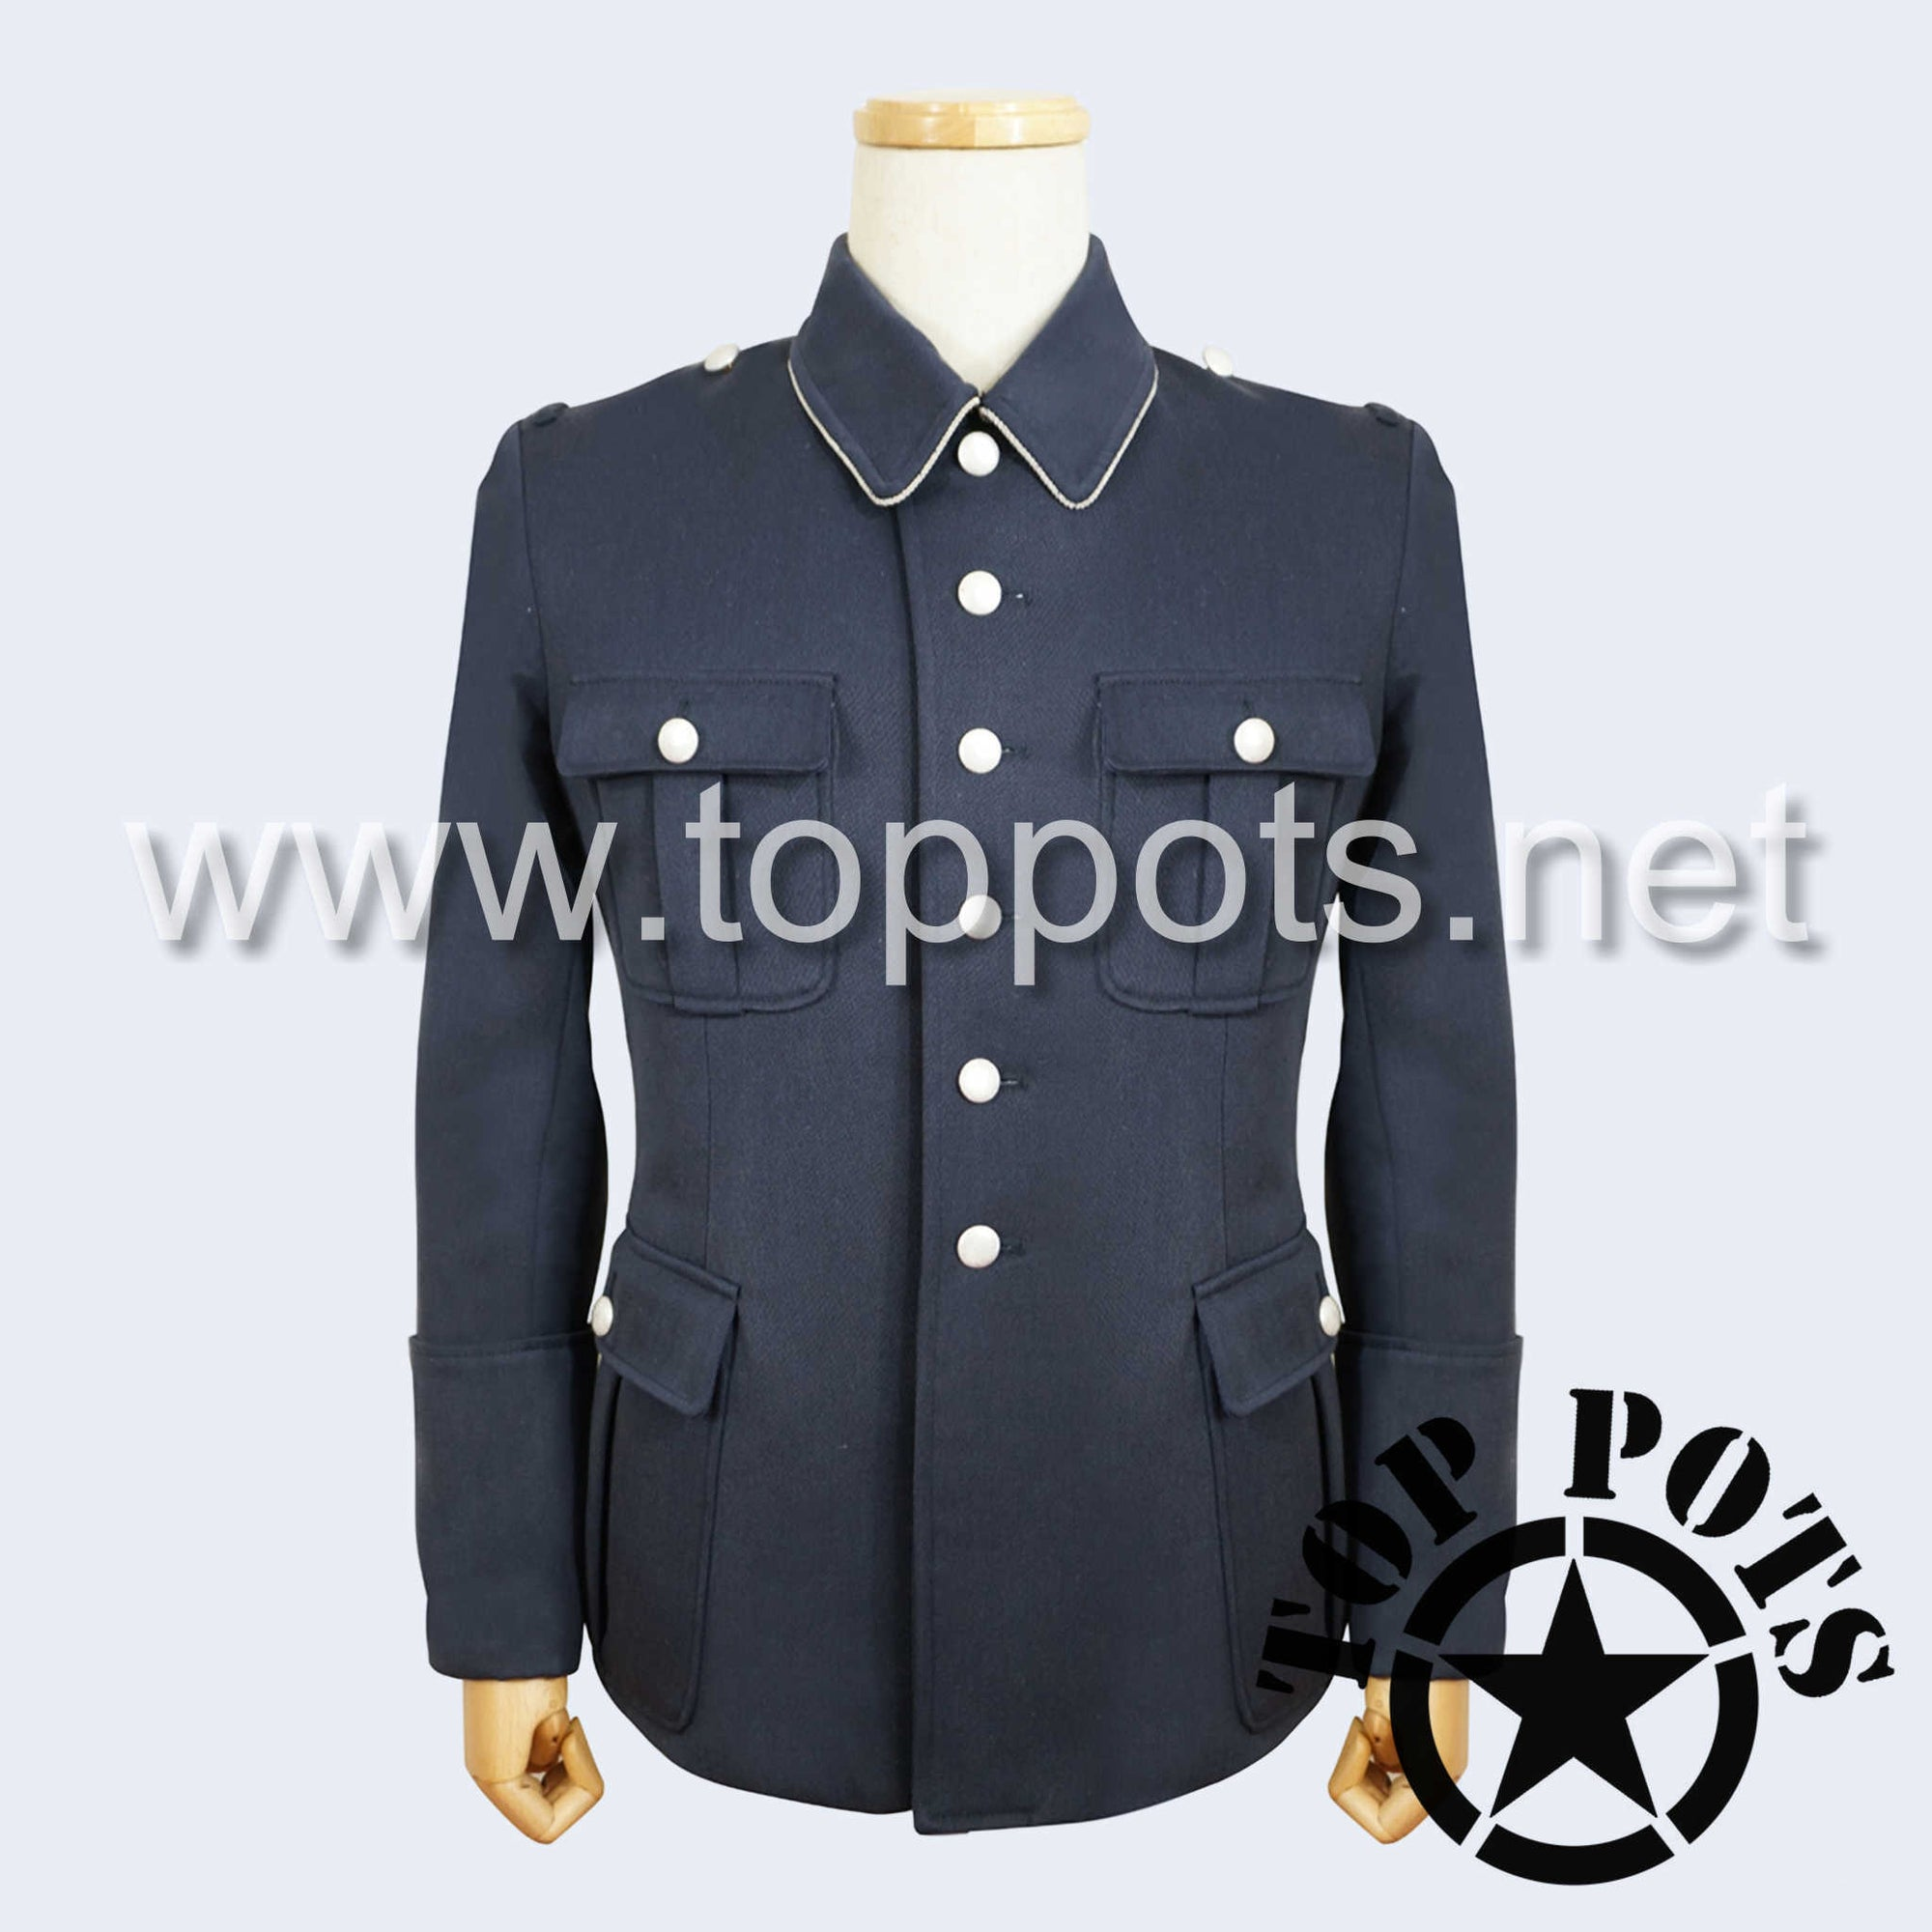 WWII German Luftwaffe M1936 Officer Uniform Jacket Blue Grey Gabardine Tunic (Silver Collar Piping)